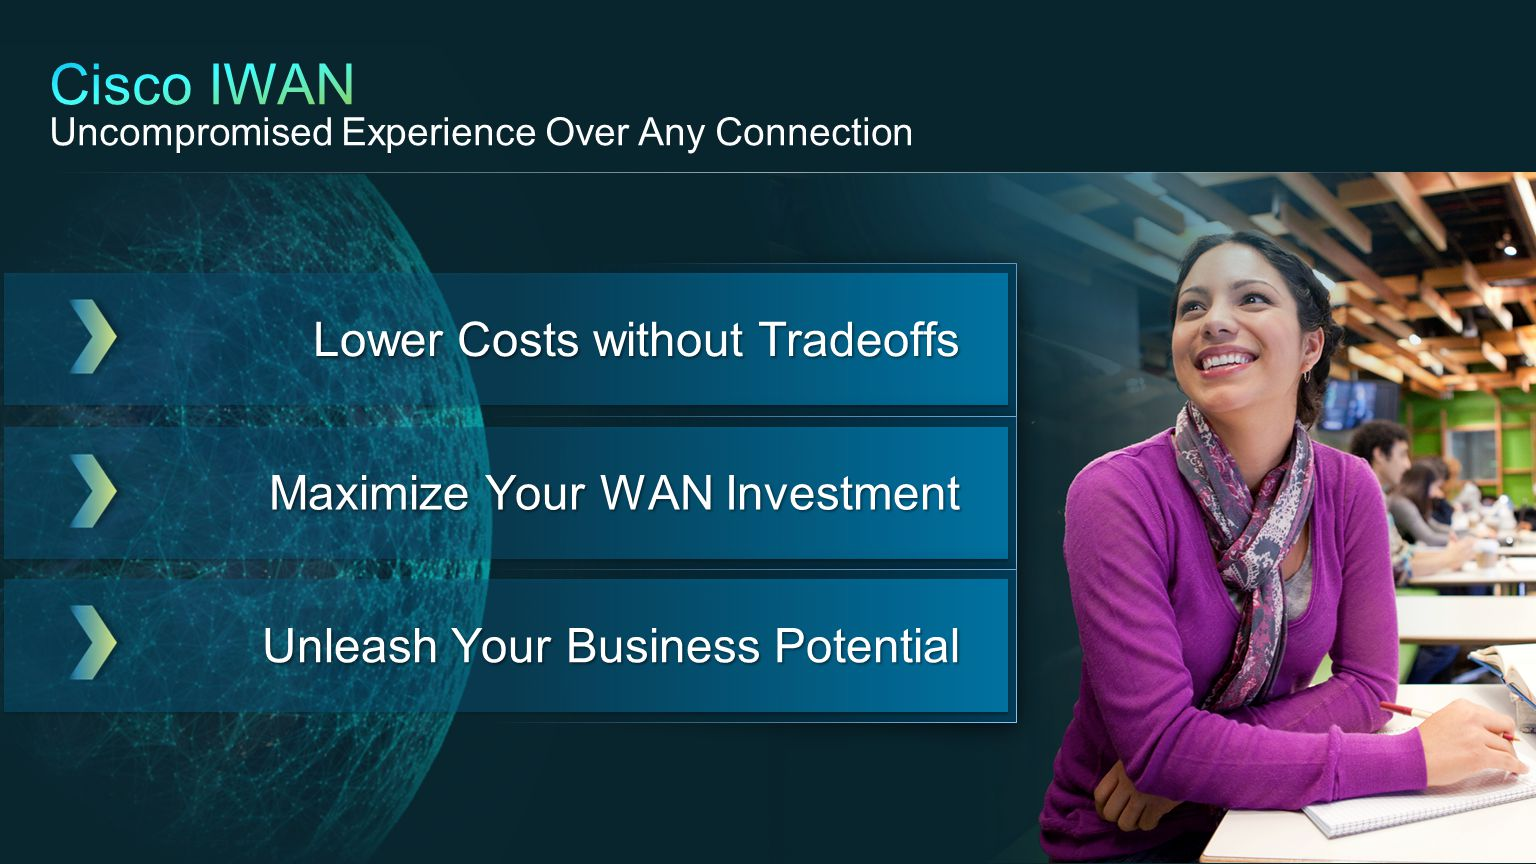 Cisco IWAN Uncompromised Experience Over Any Connection